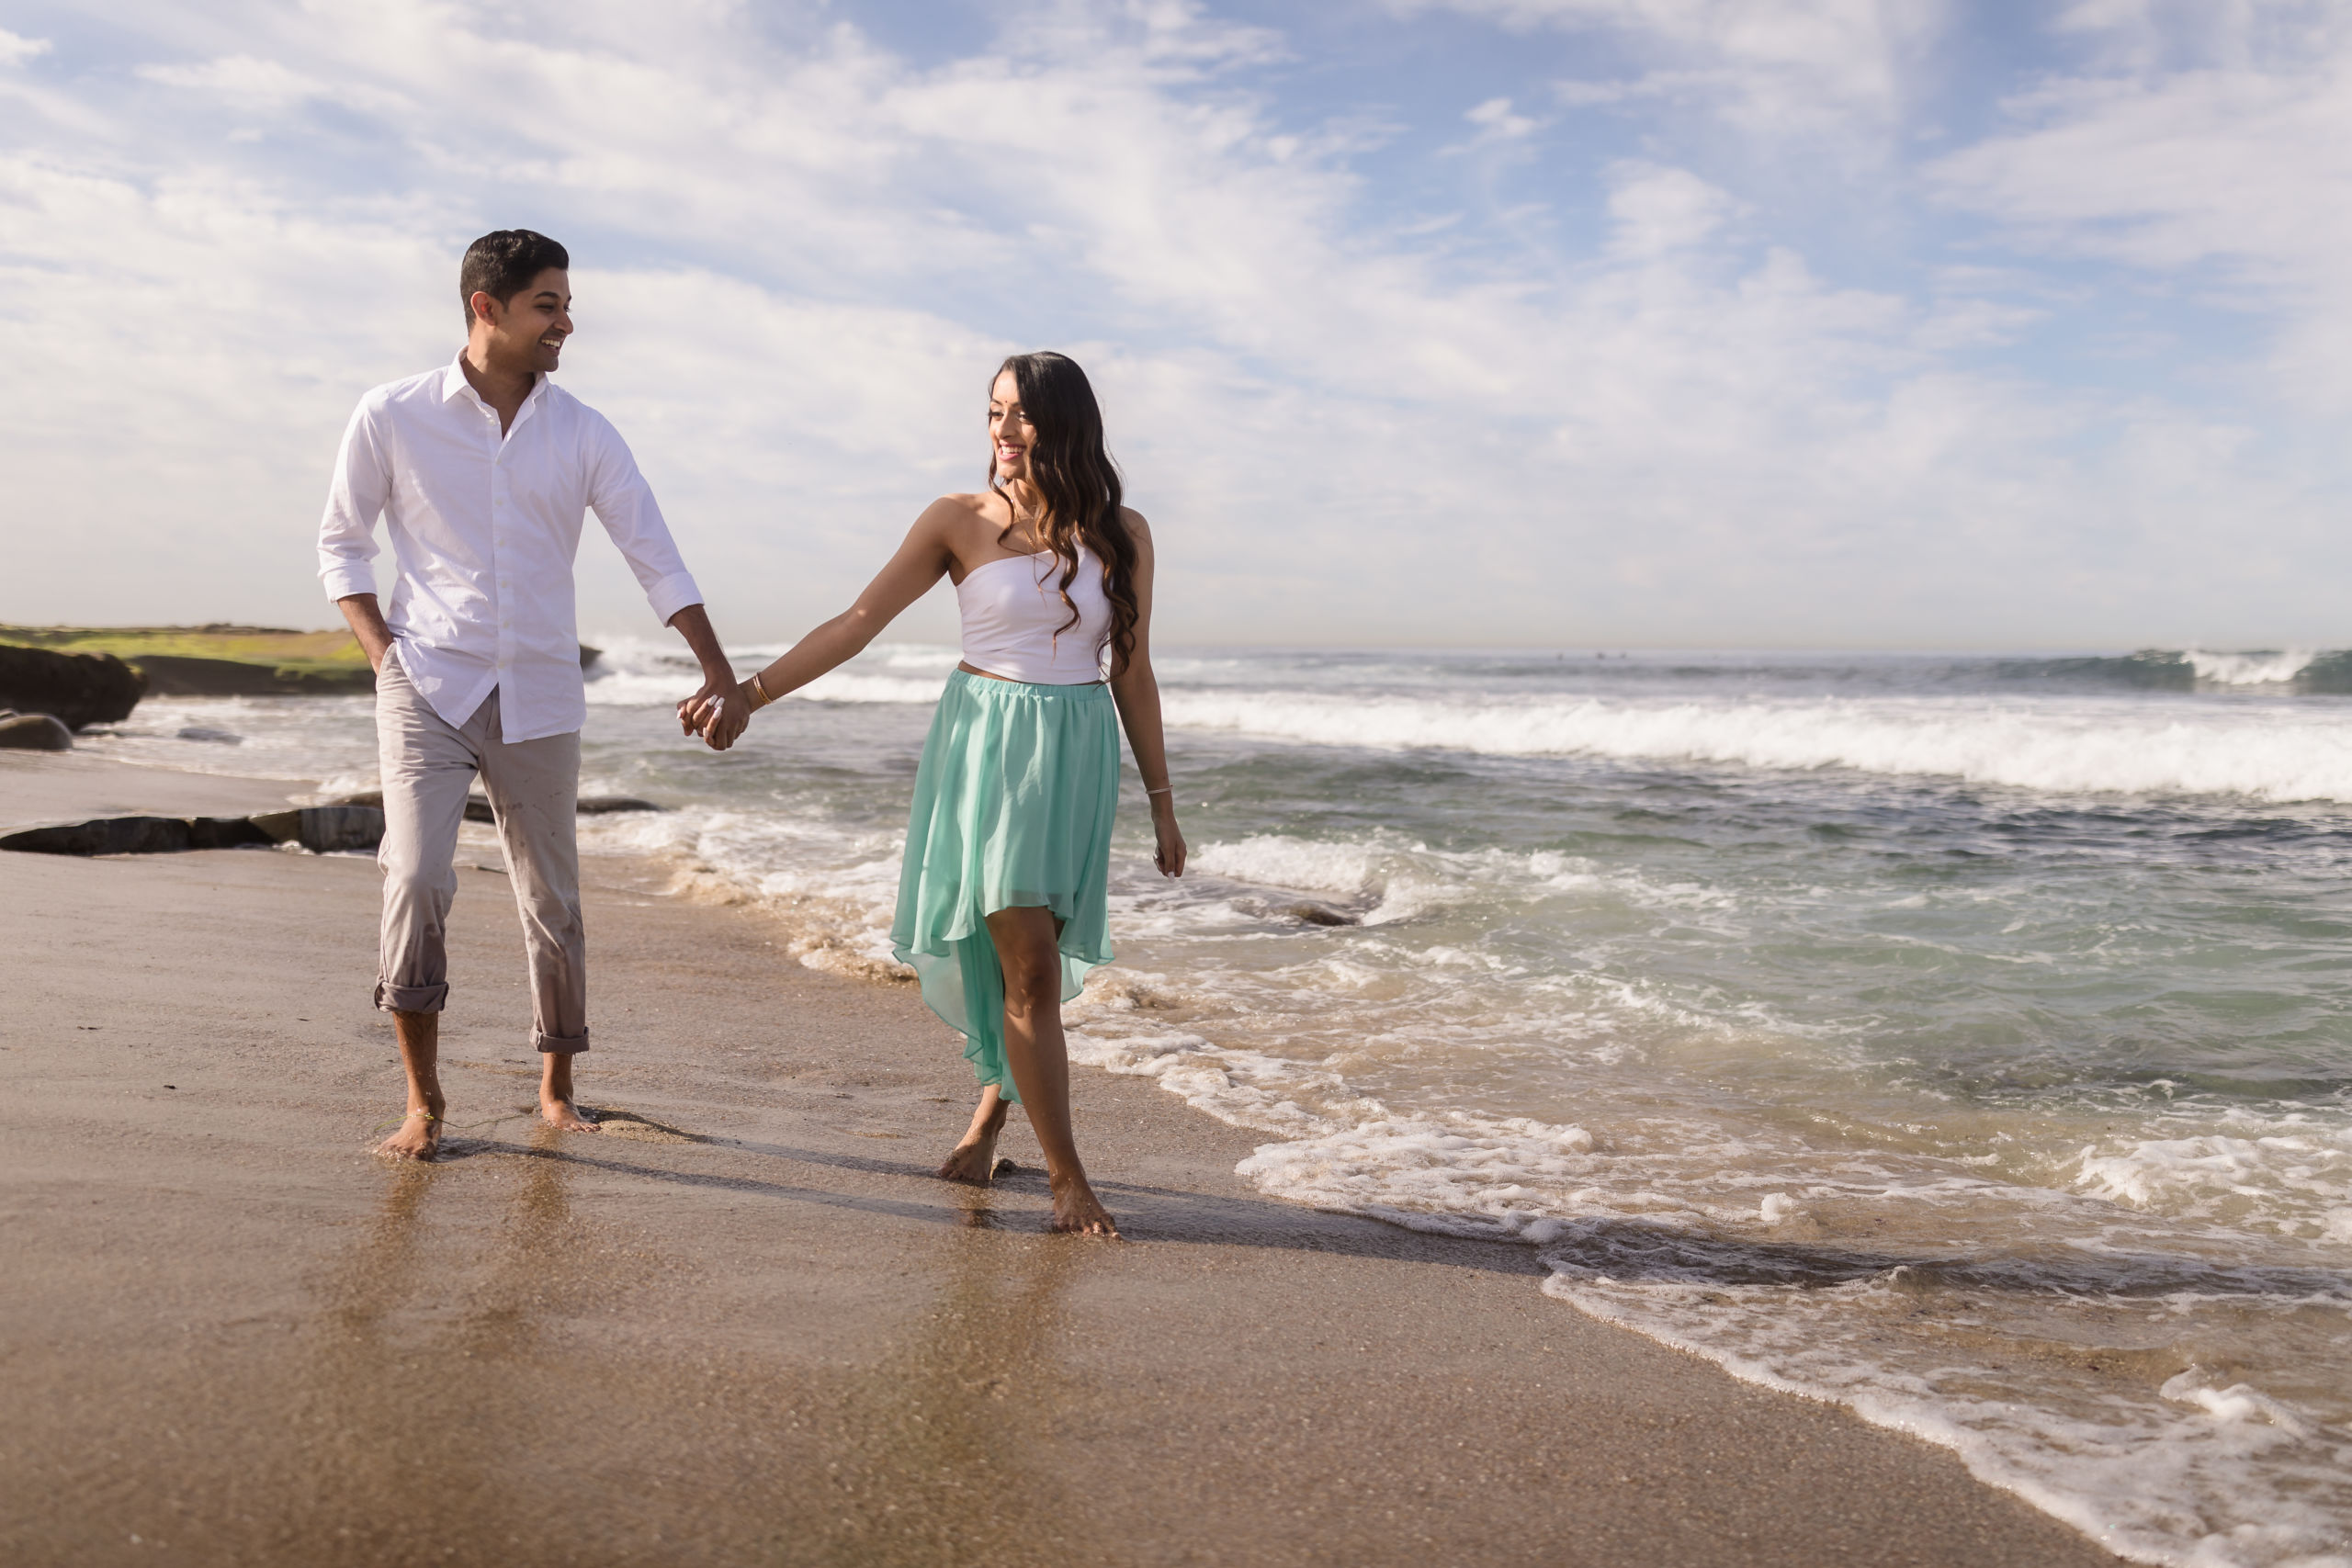 0099 PD La Jolla Cove San Diego County Engagement Photography